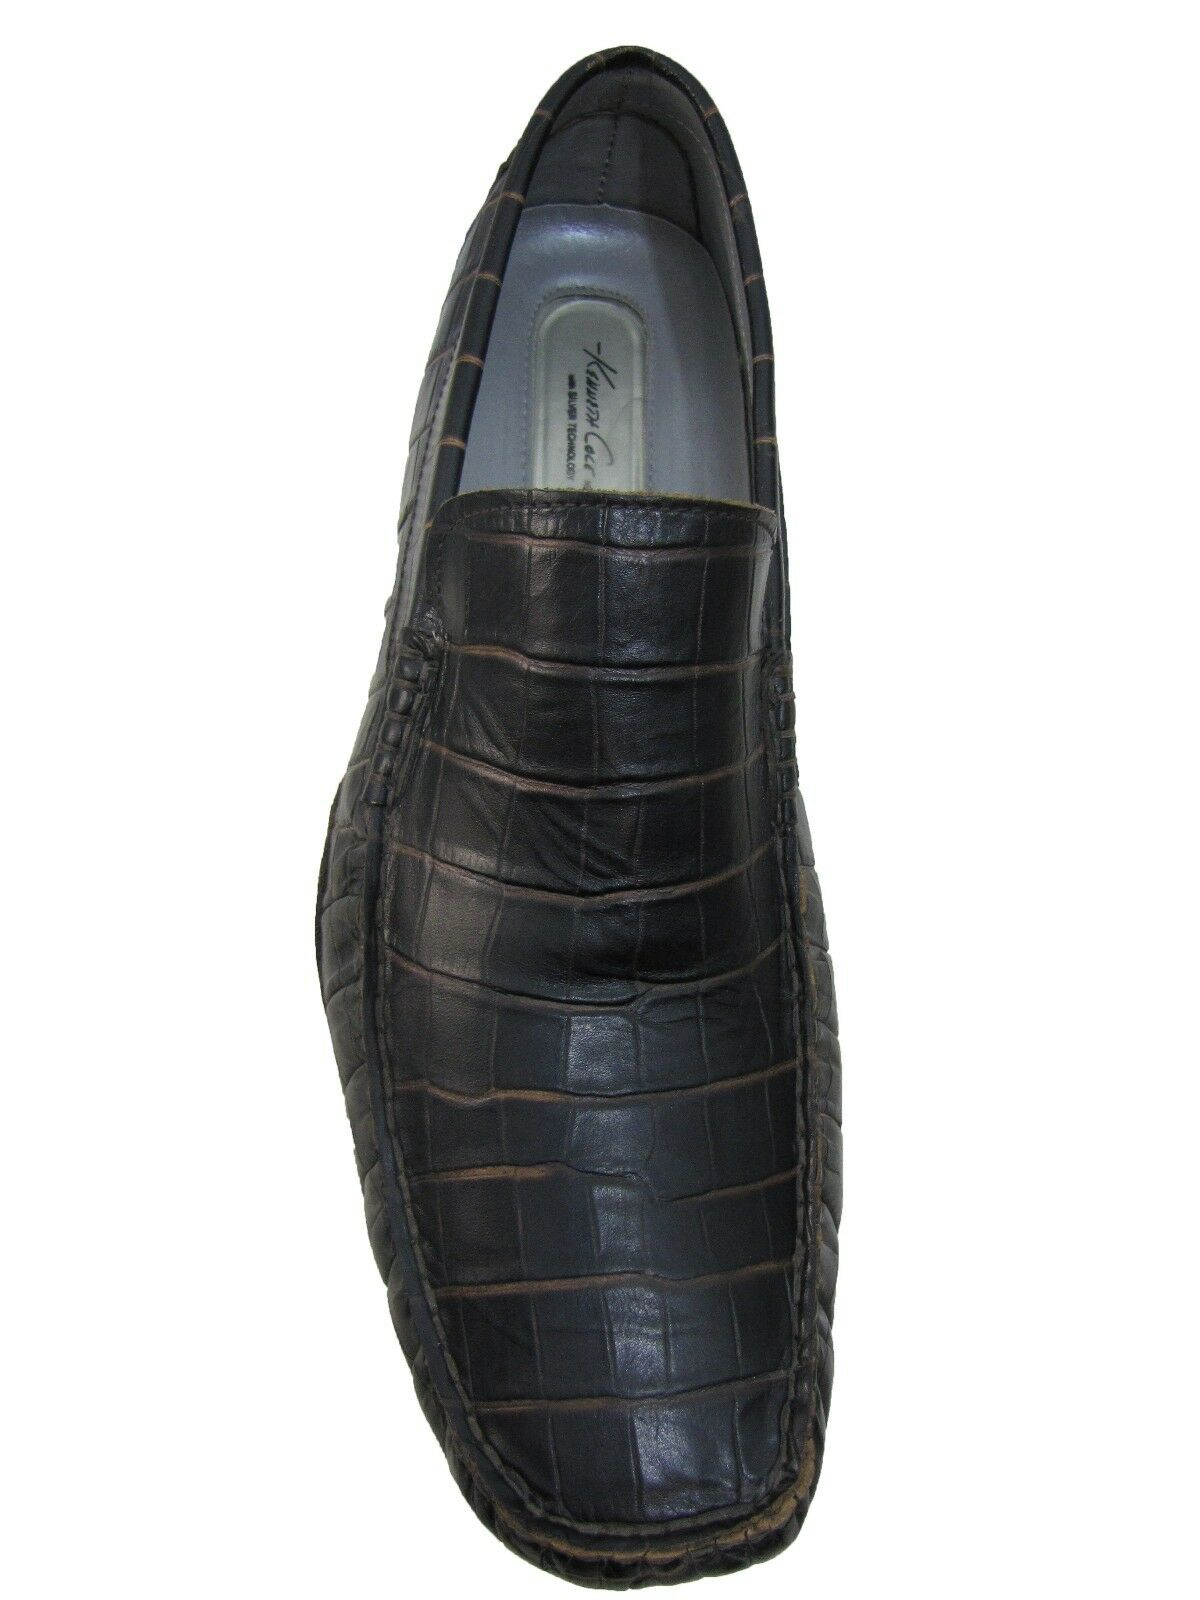 Scarpe casual da uomo  Kenneth Cole New York uomos M72118 Slip On Business Casual Loafers Croc Shoes